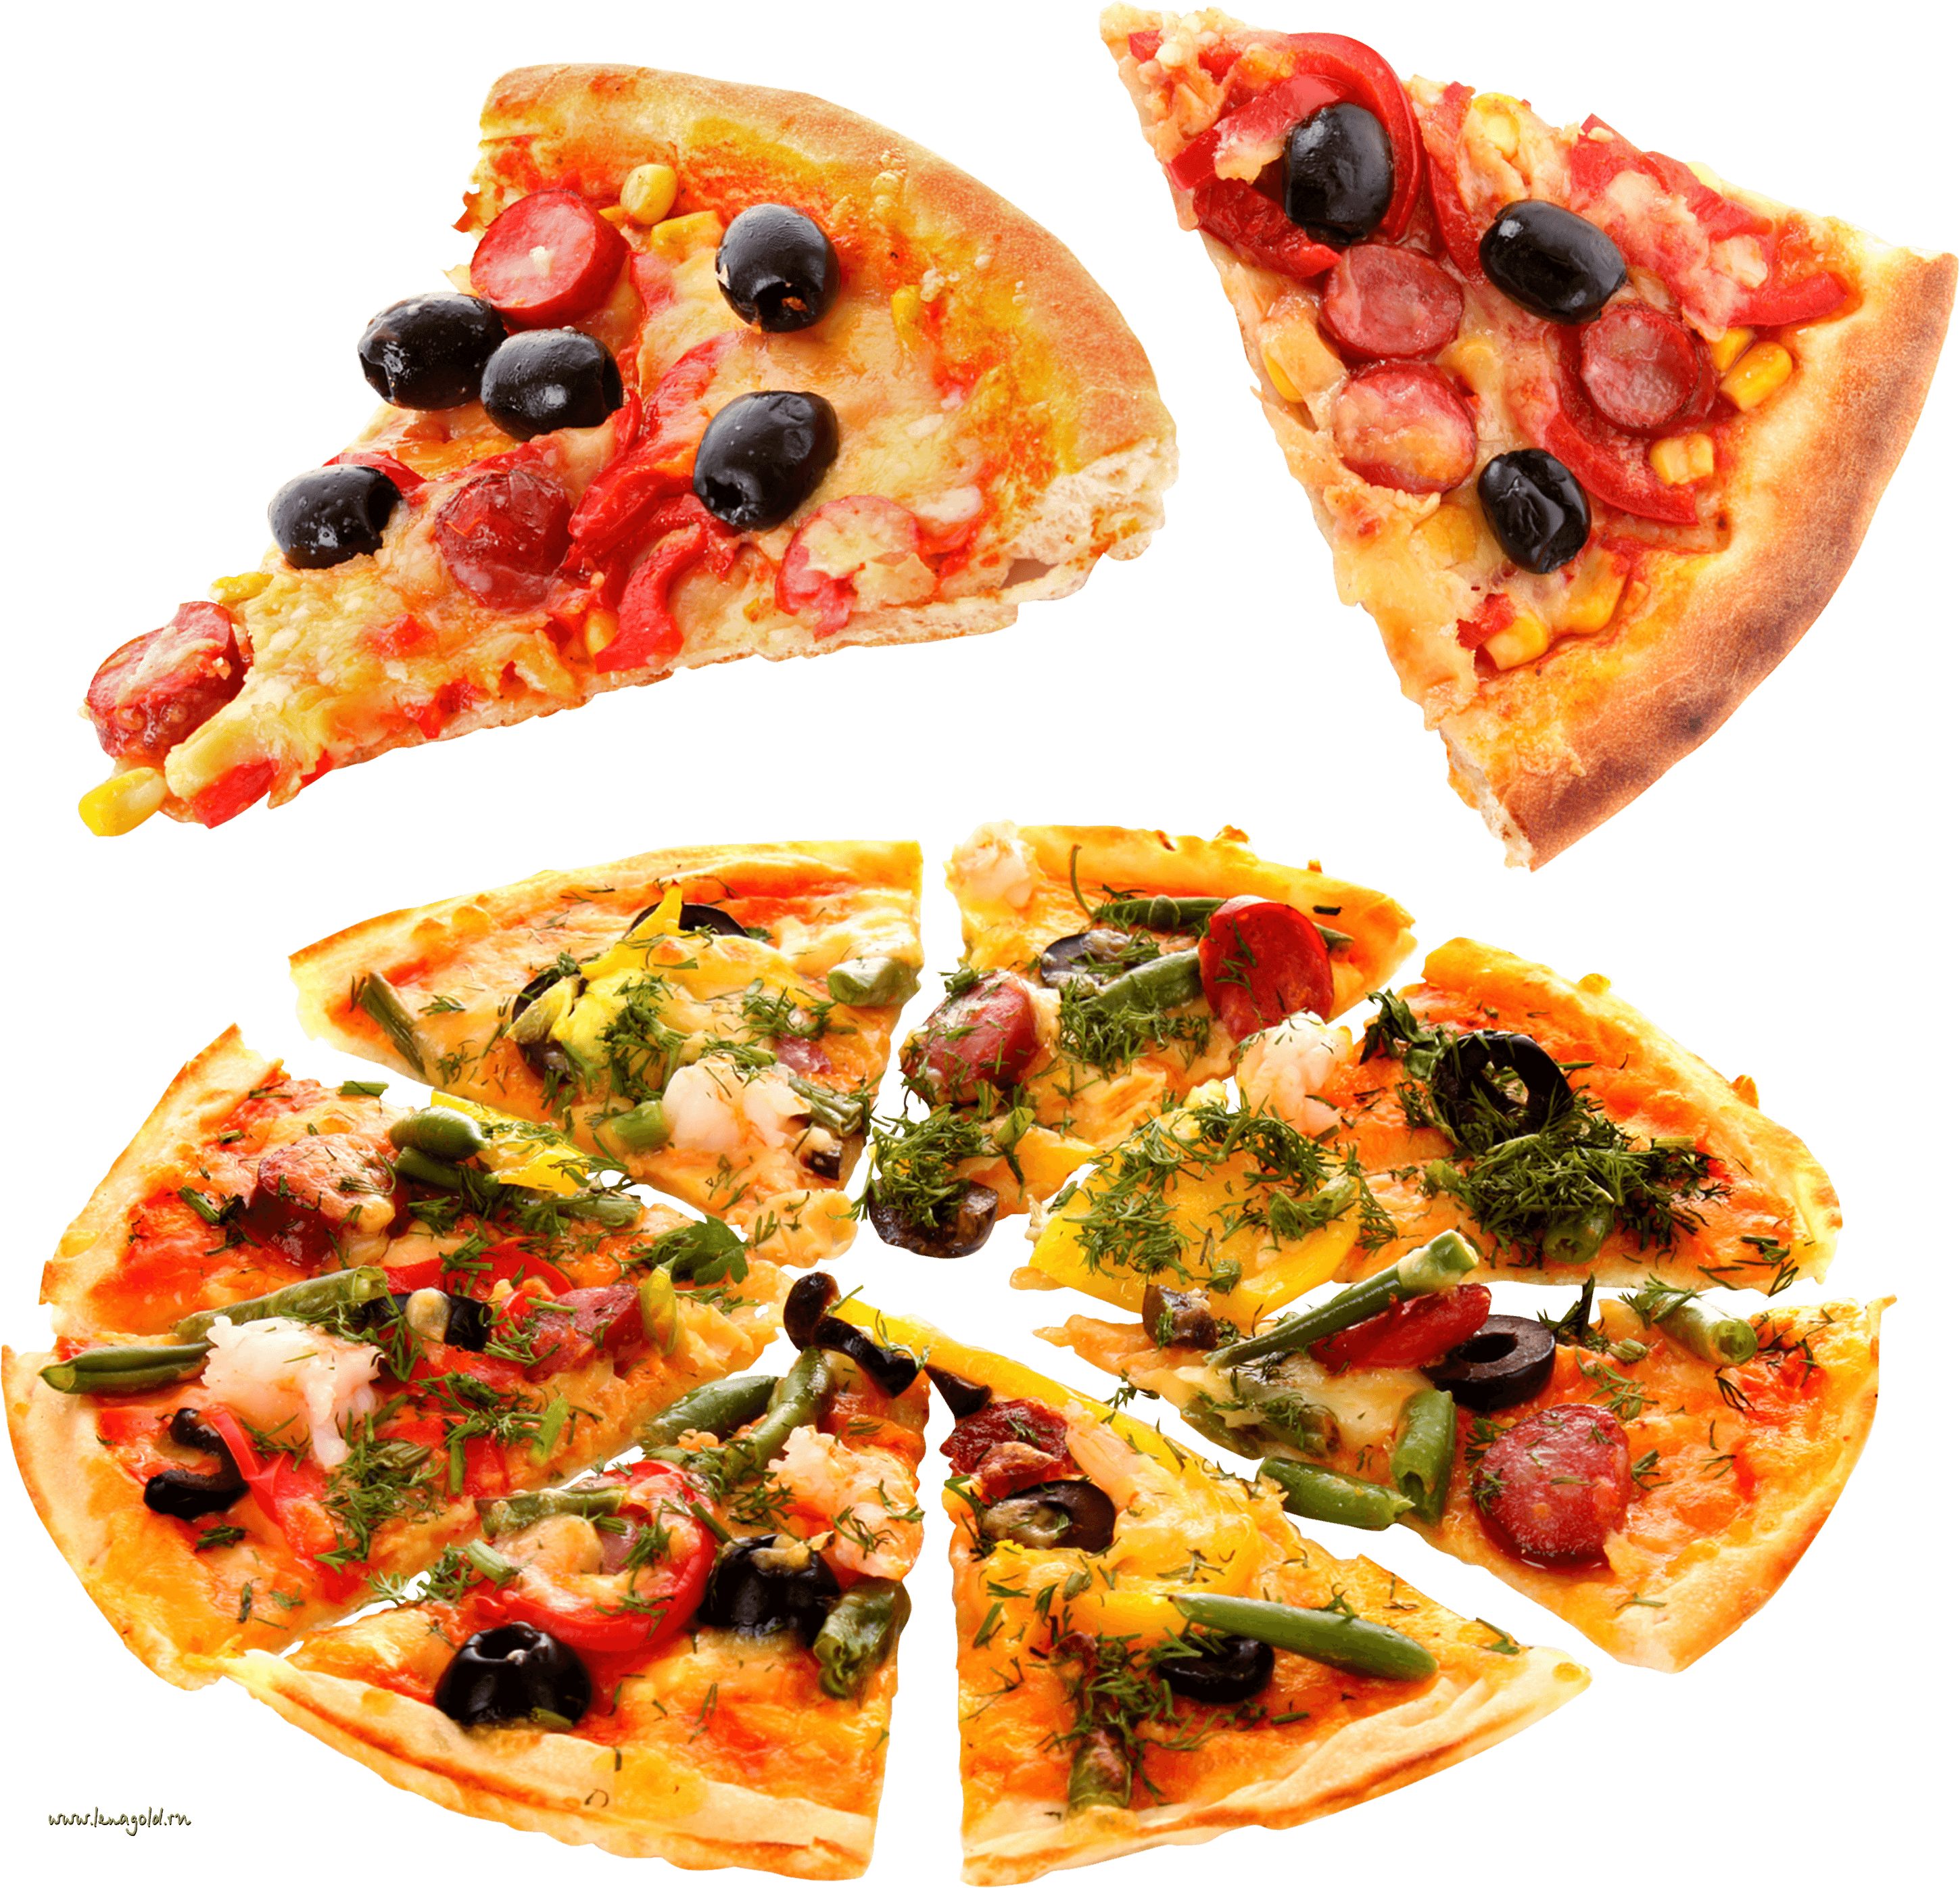 download pizza image image high quality #7971